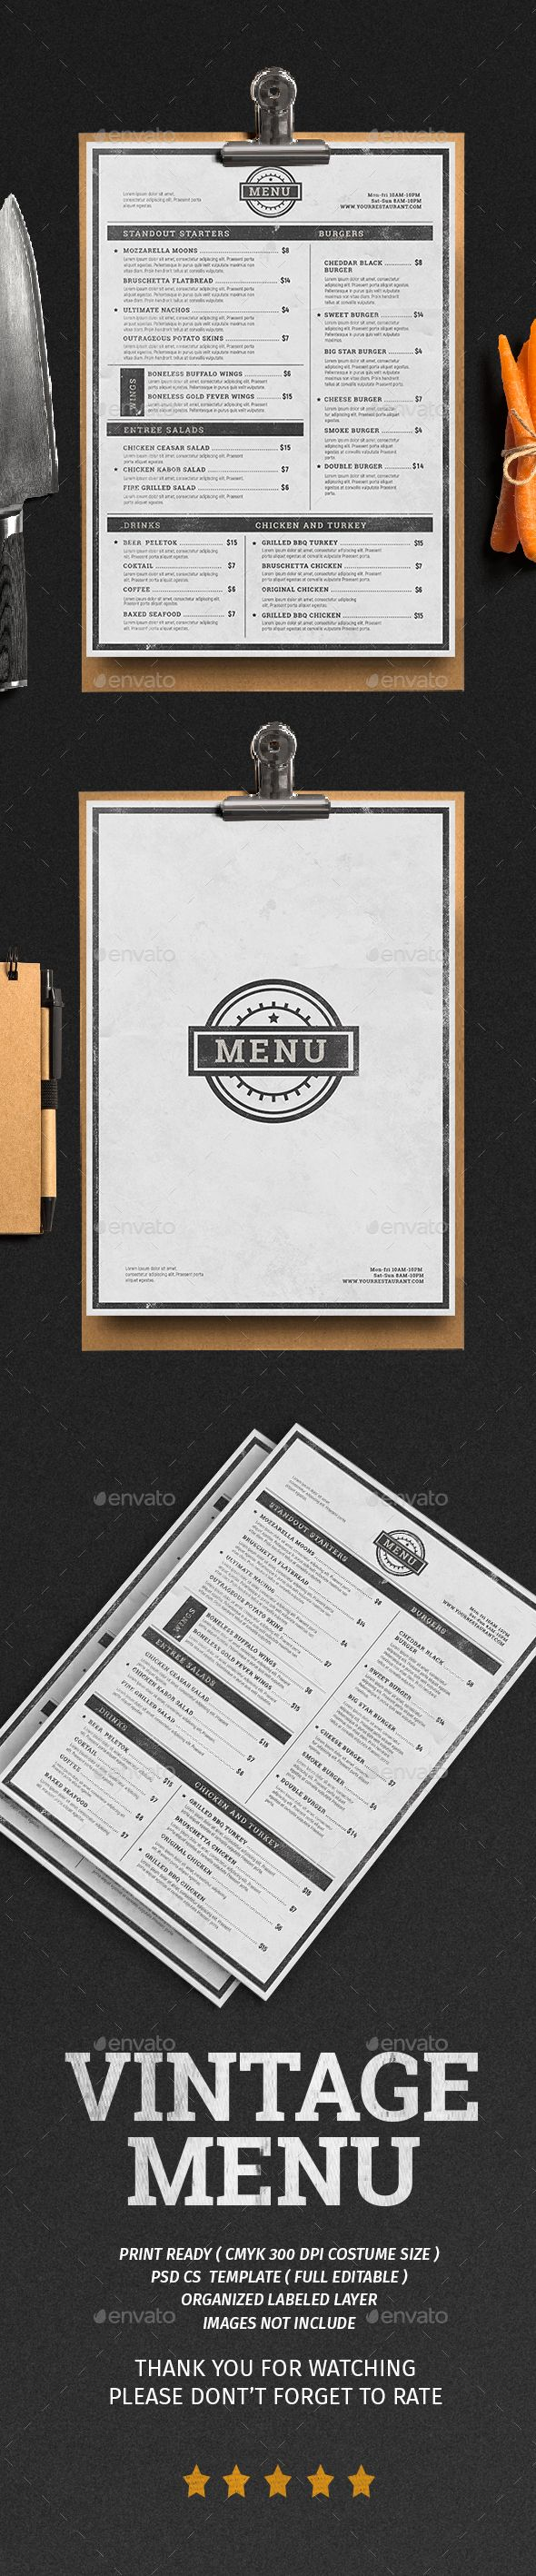 Vintage Menu  — PSD Template #restaurant #modern • Download ➝ https://graphicriver.net/item/vintage-menu/18458187?ref=pxcr